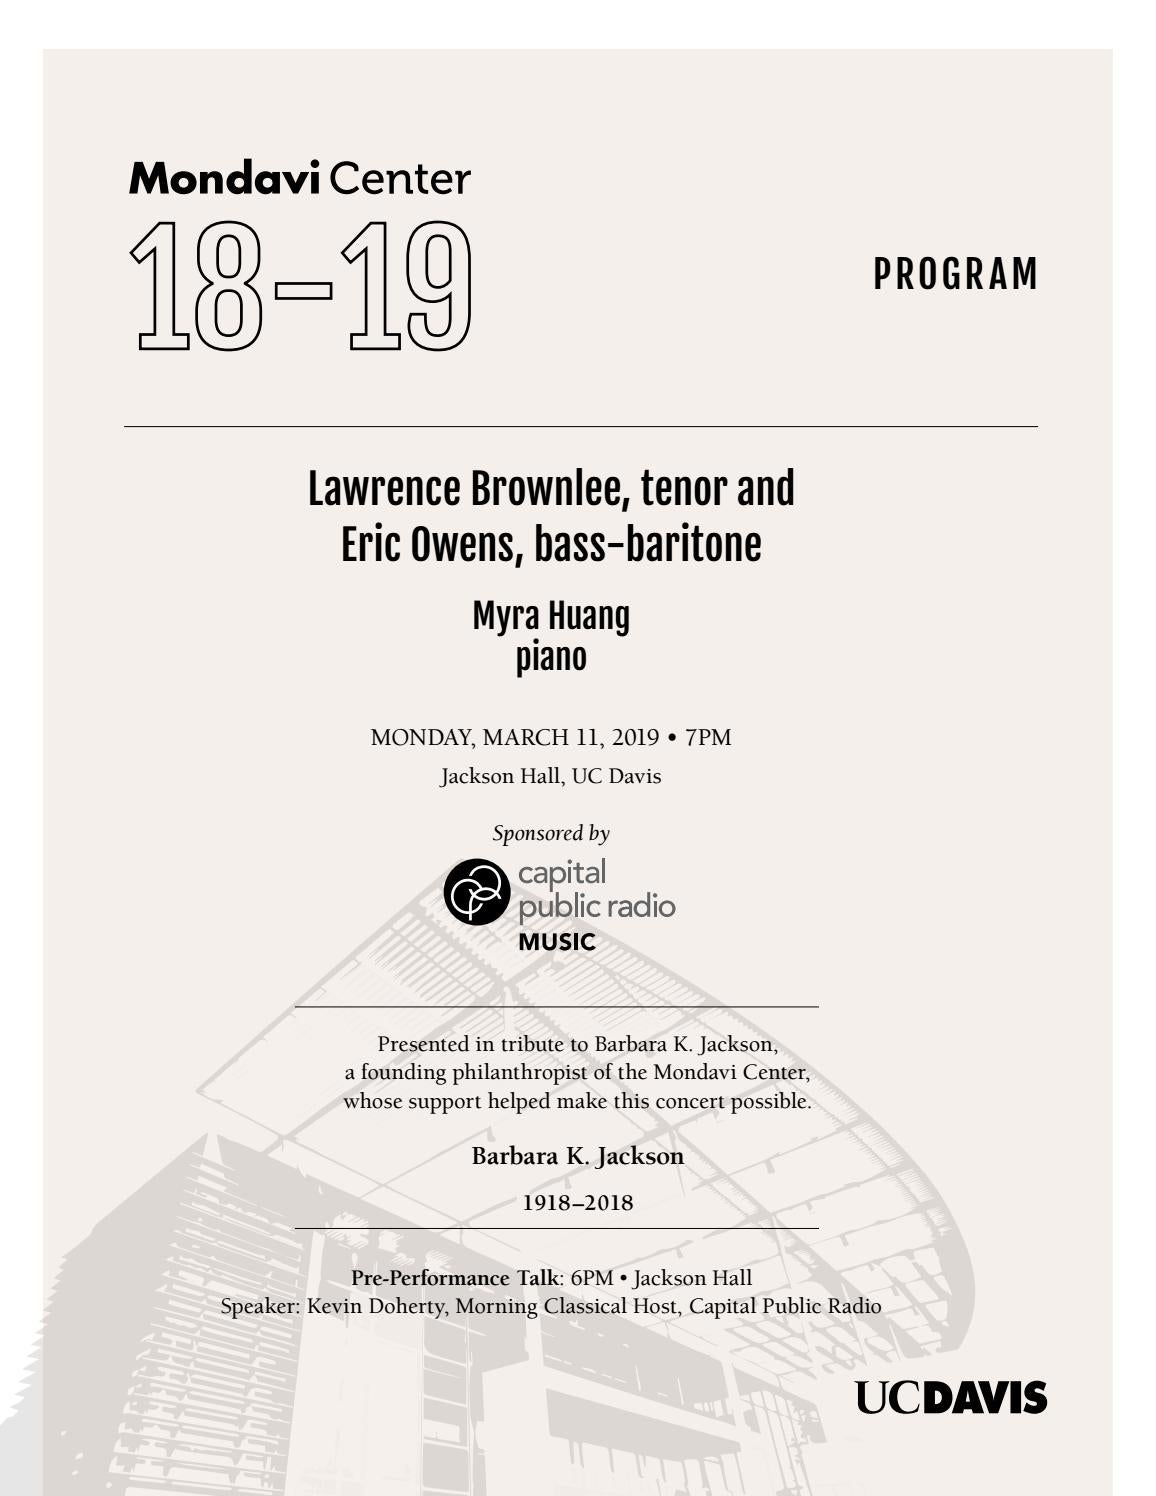 Arte Concert Hurricane 2018 Lawrence Brownlee Tenor And Eric Owens Bass Baritone Program By